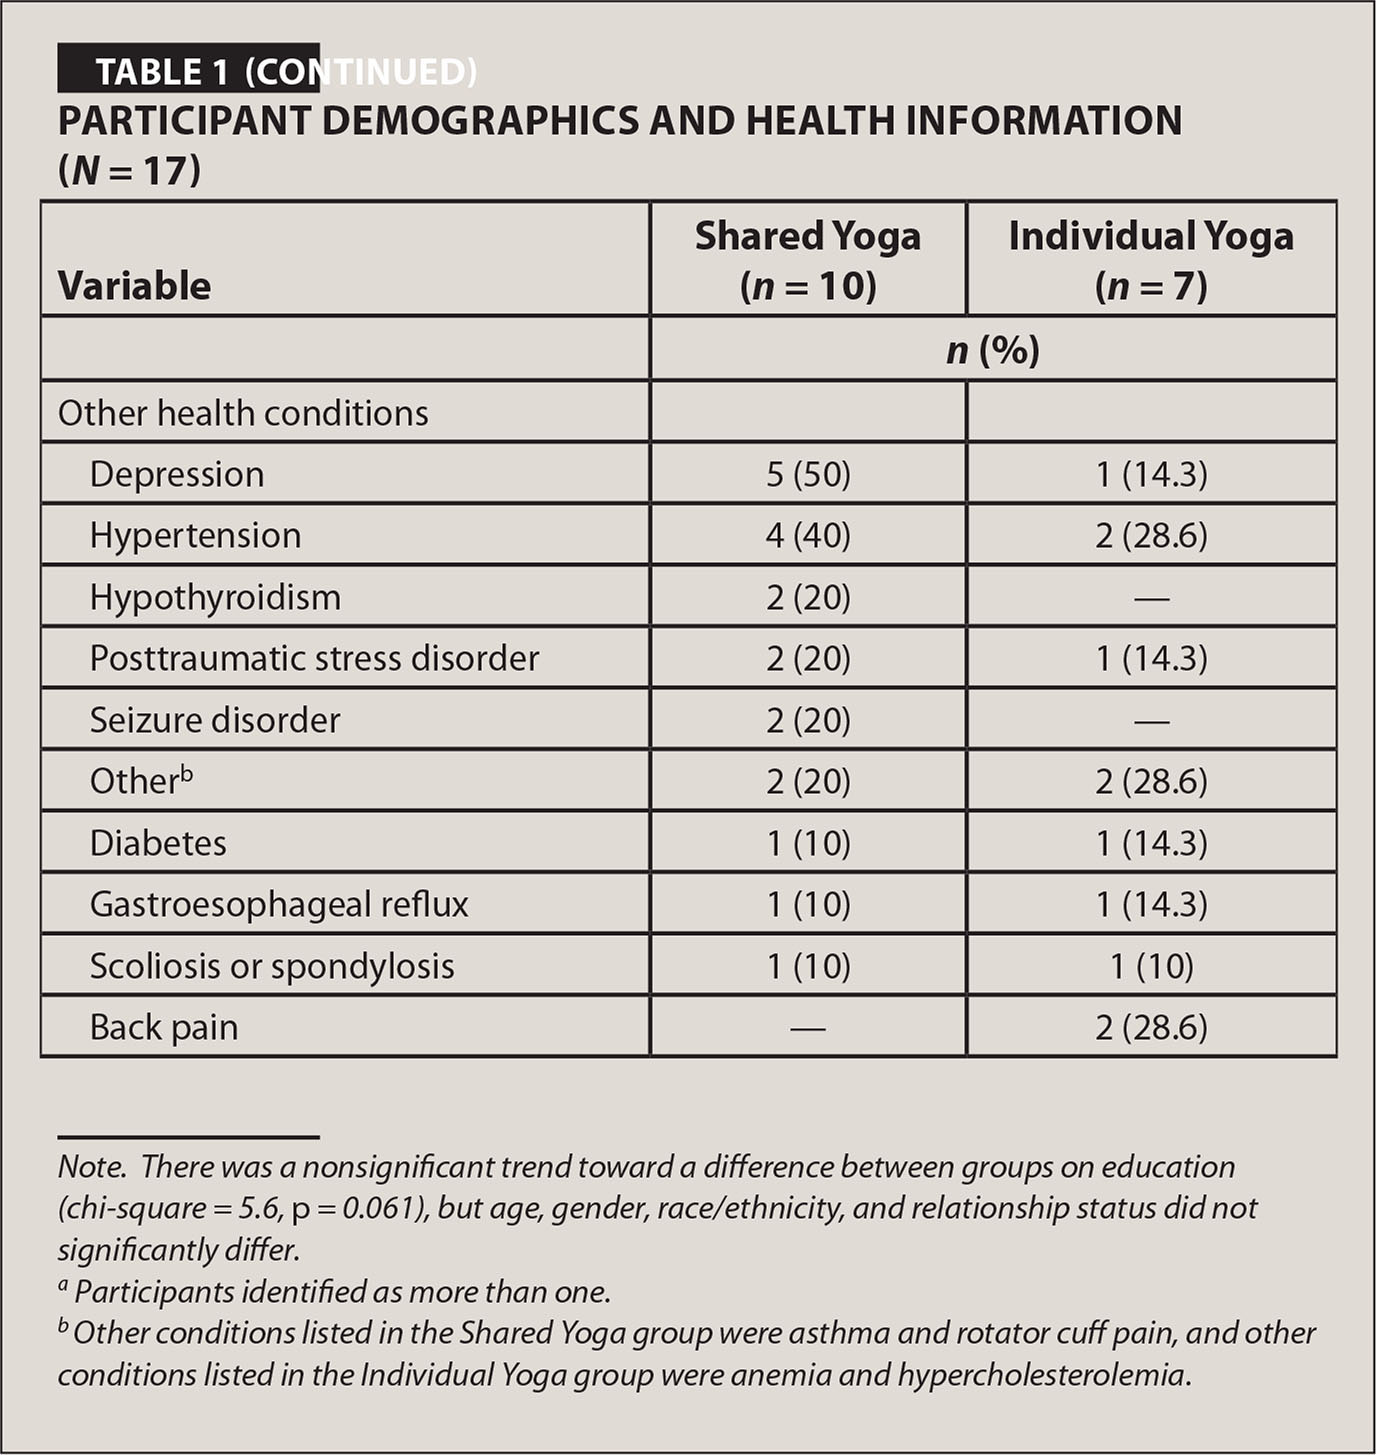 Participant Demographics and Health Information (N = 17)